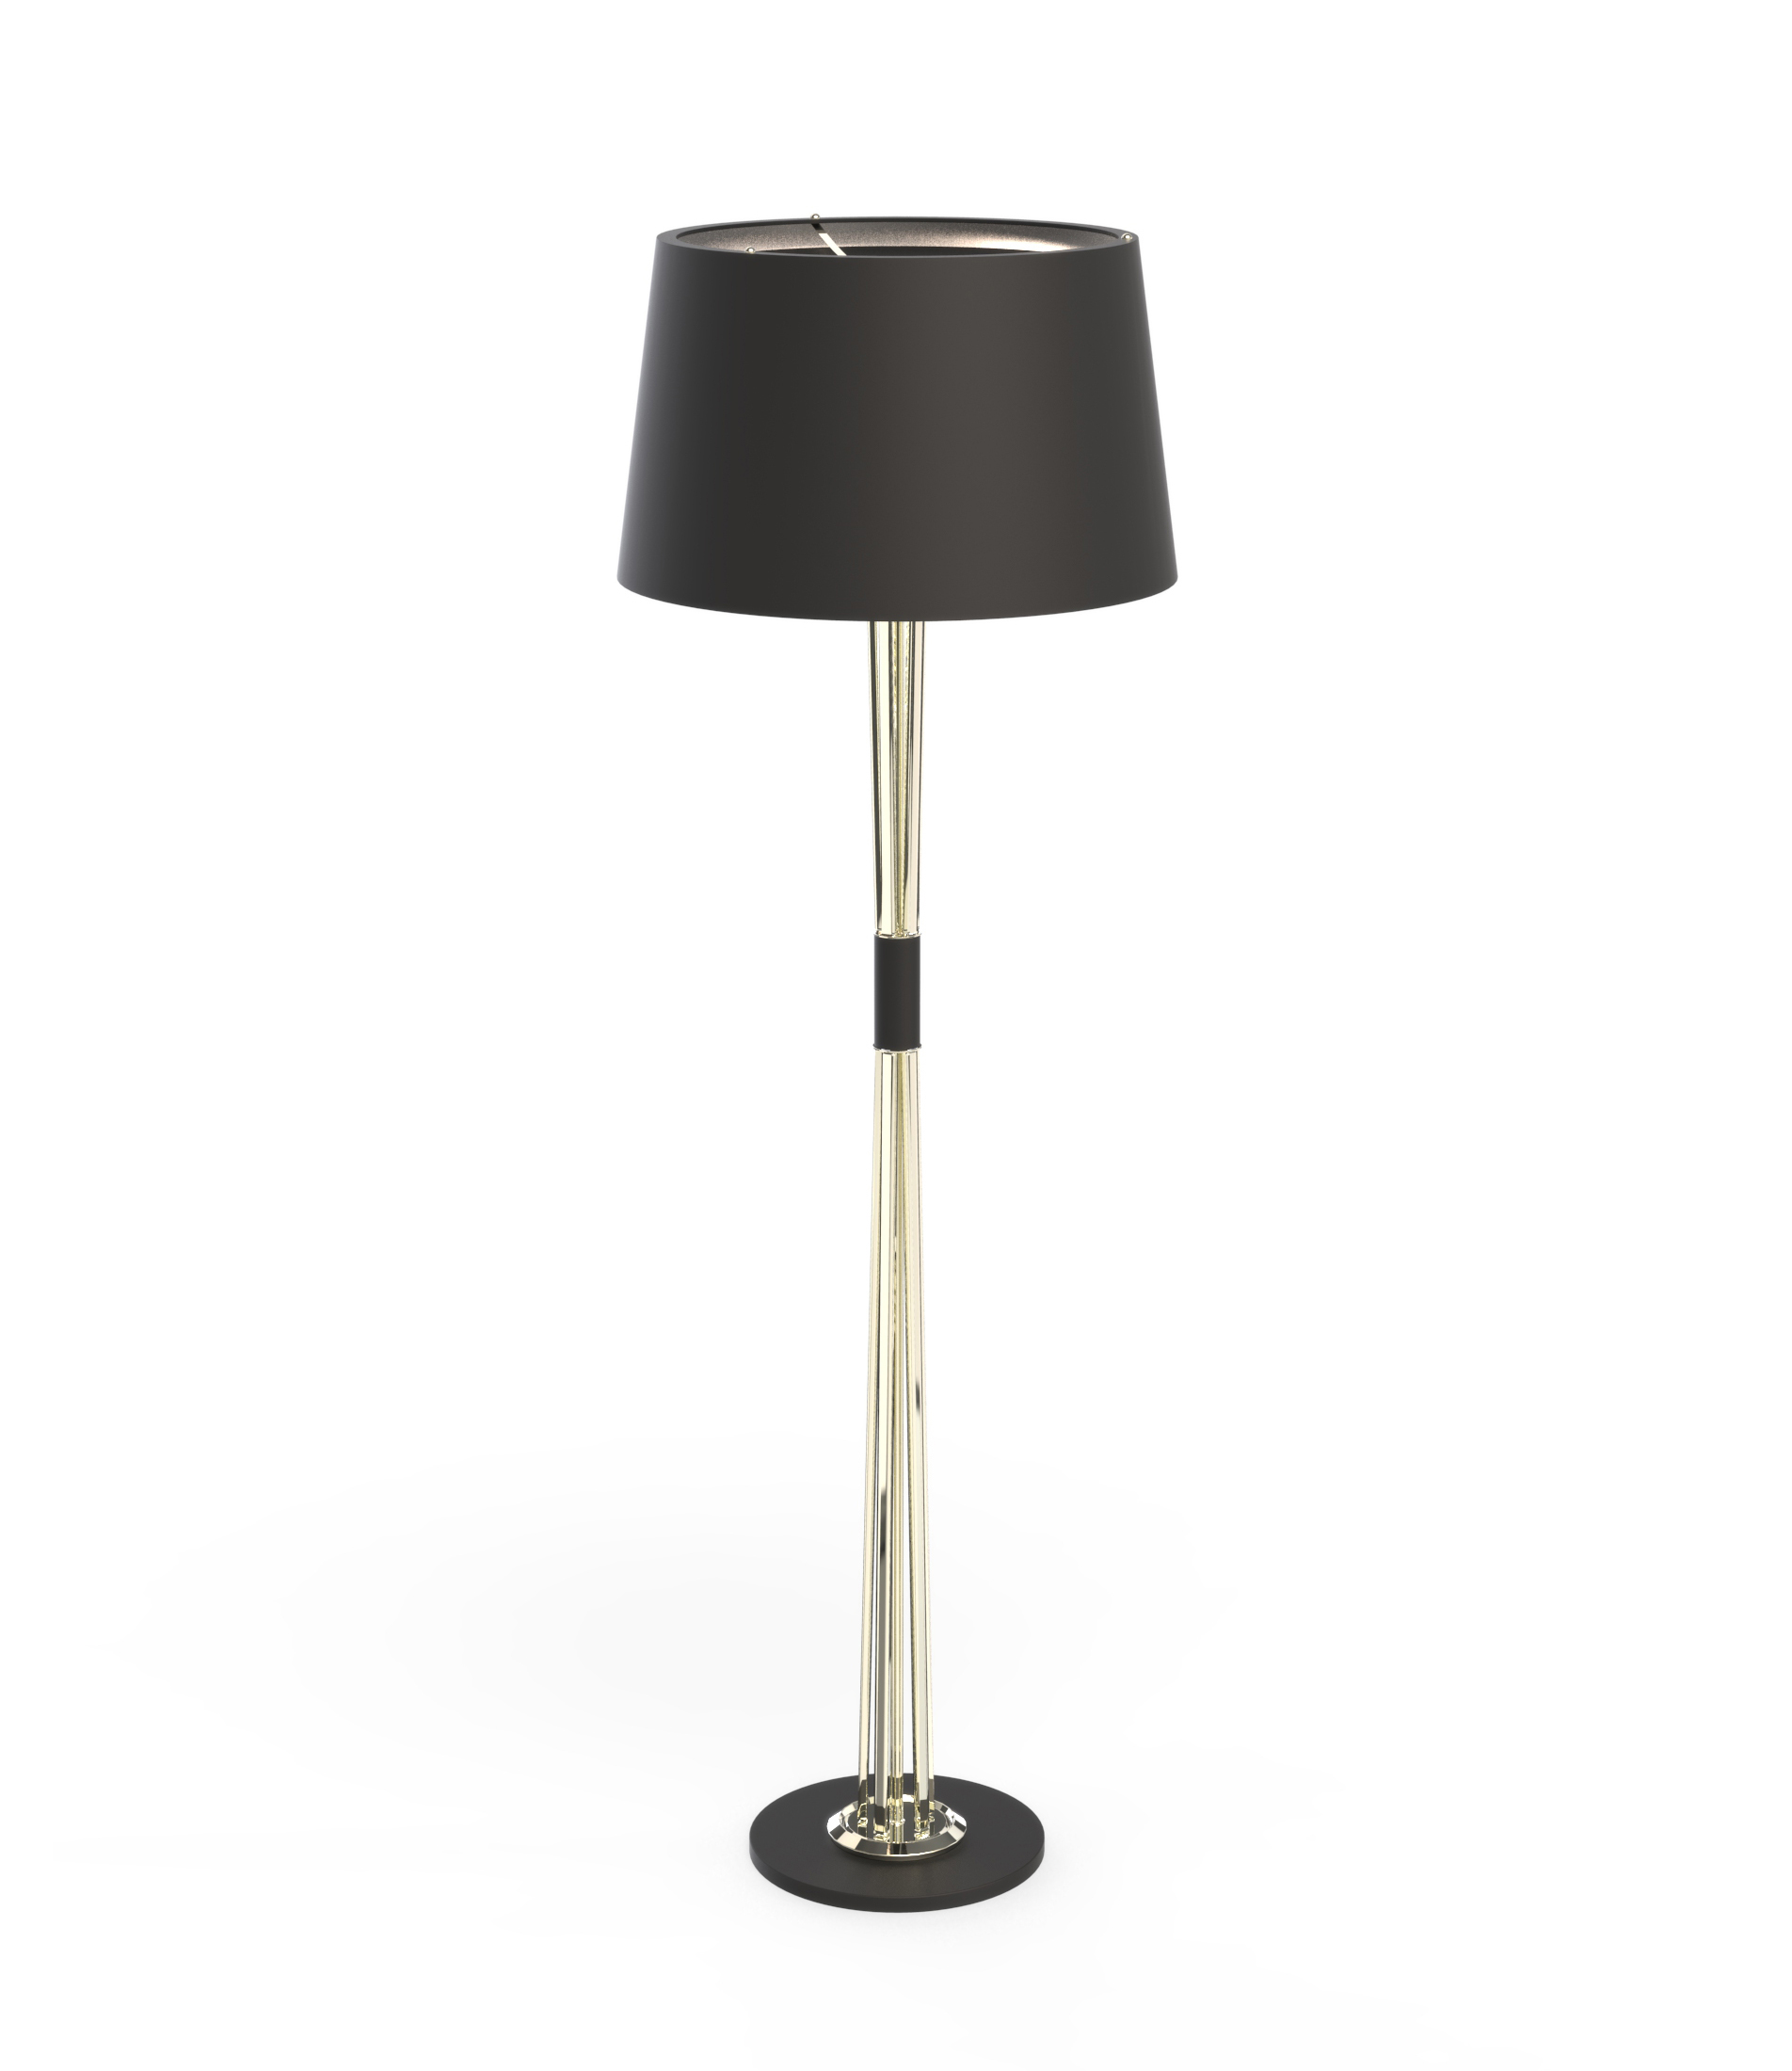 Dress Up Your Scandinavian Bedroom with These Modern Floor Lamps 7 modern floor lamps Dress Up Your Scandinavian Bedroom with These Modern Floor Lamps Dress Up Your Scandinavian Bedroom with These Modern Floor Lamps 7